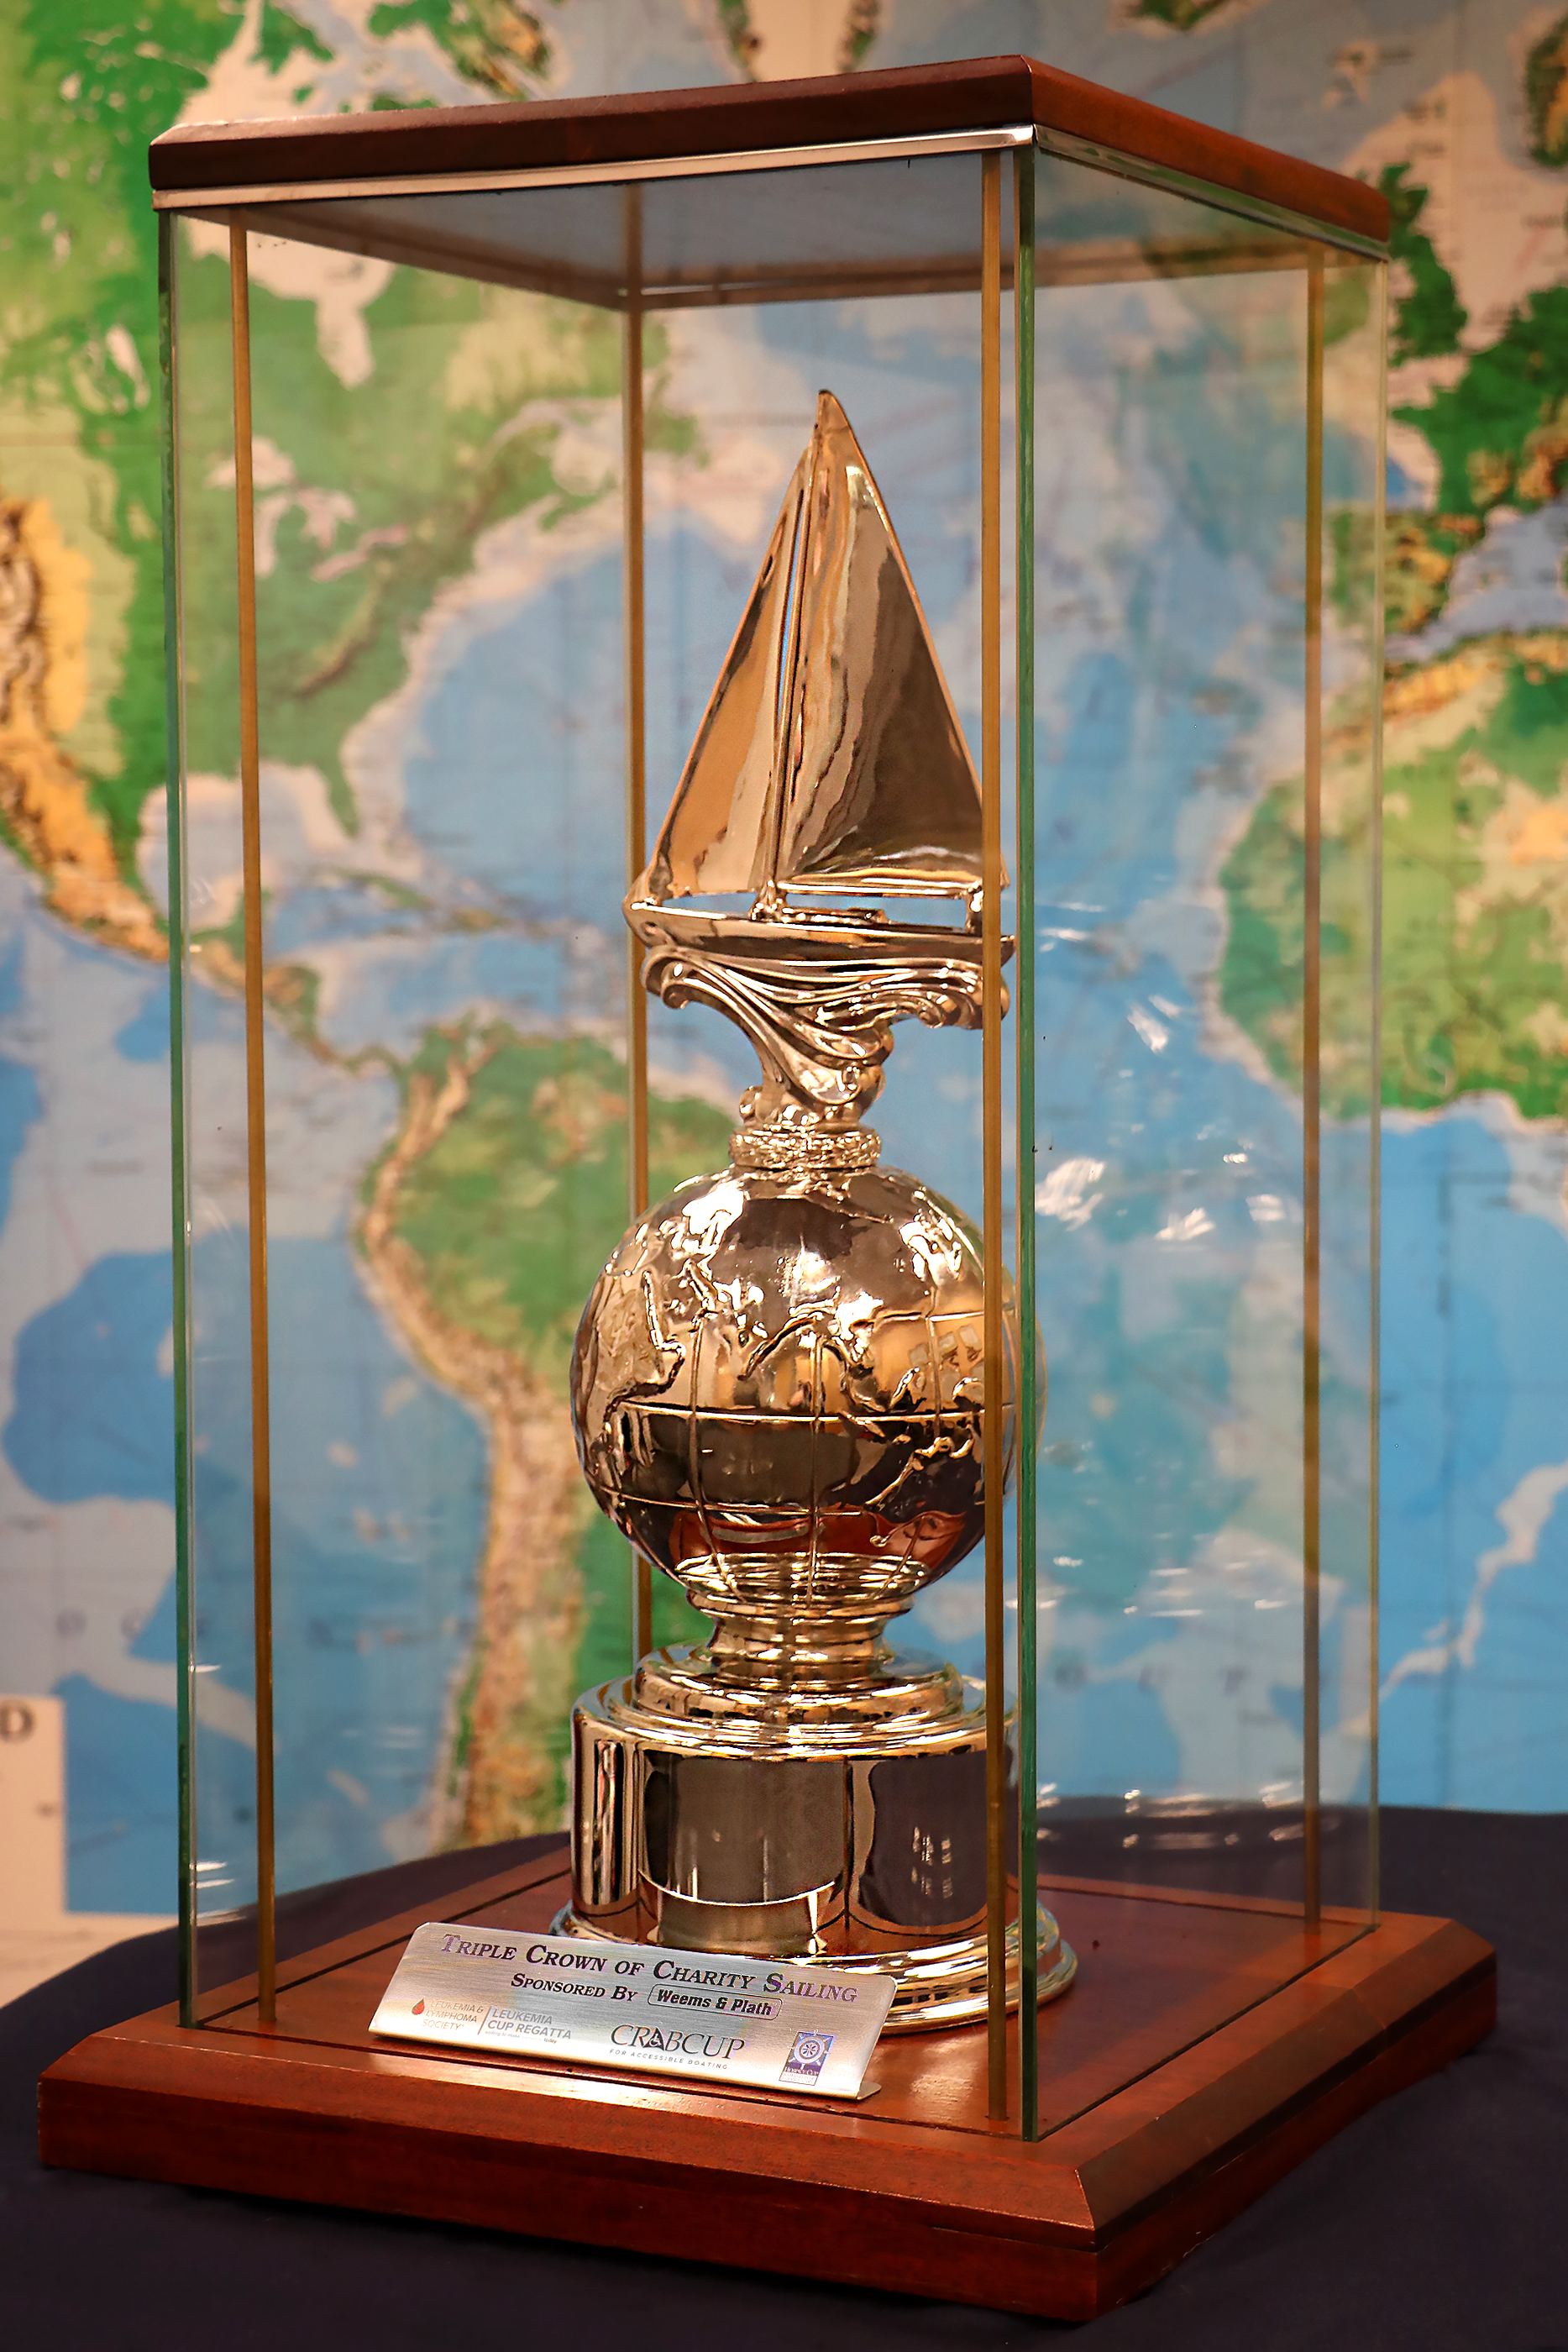 The Triple Crown of Charity Sailing Trophy from Weems & Plath